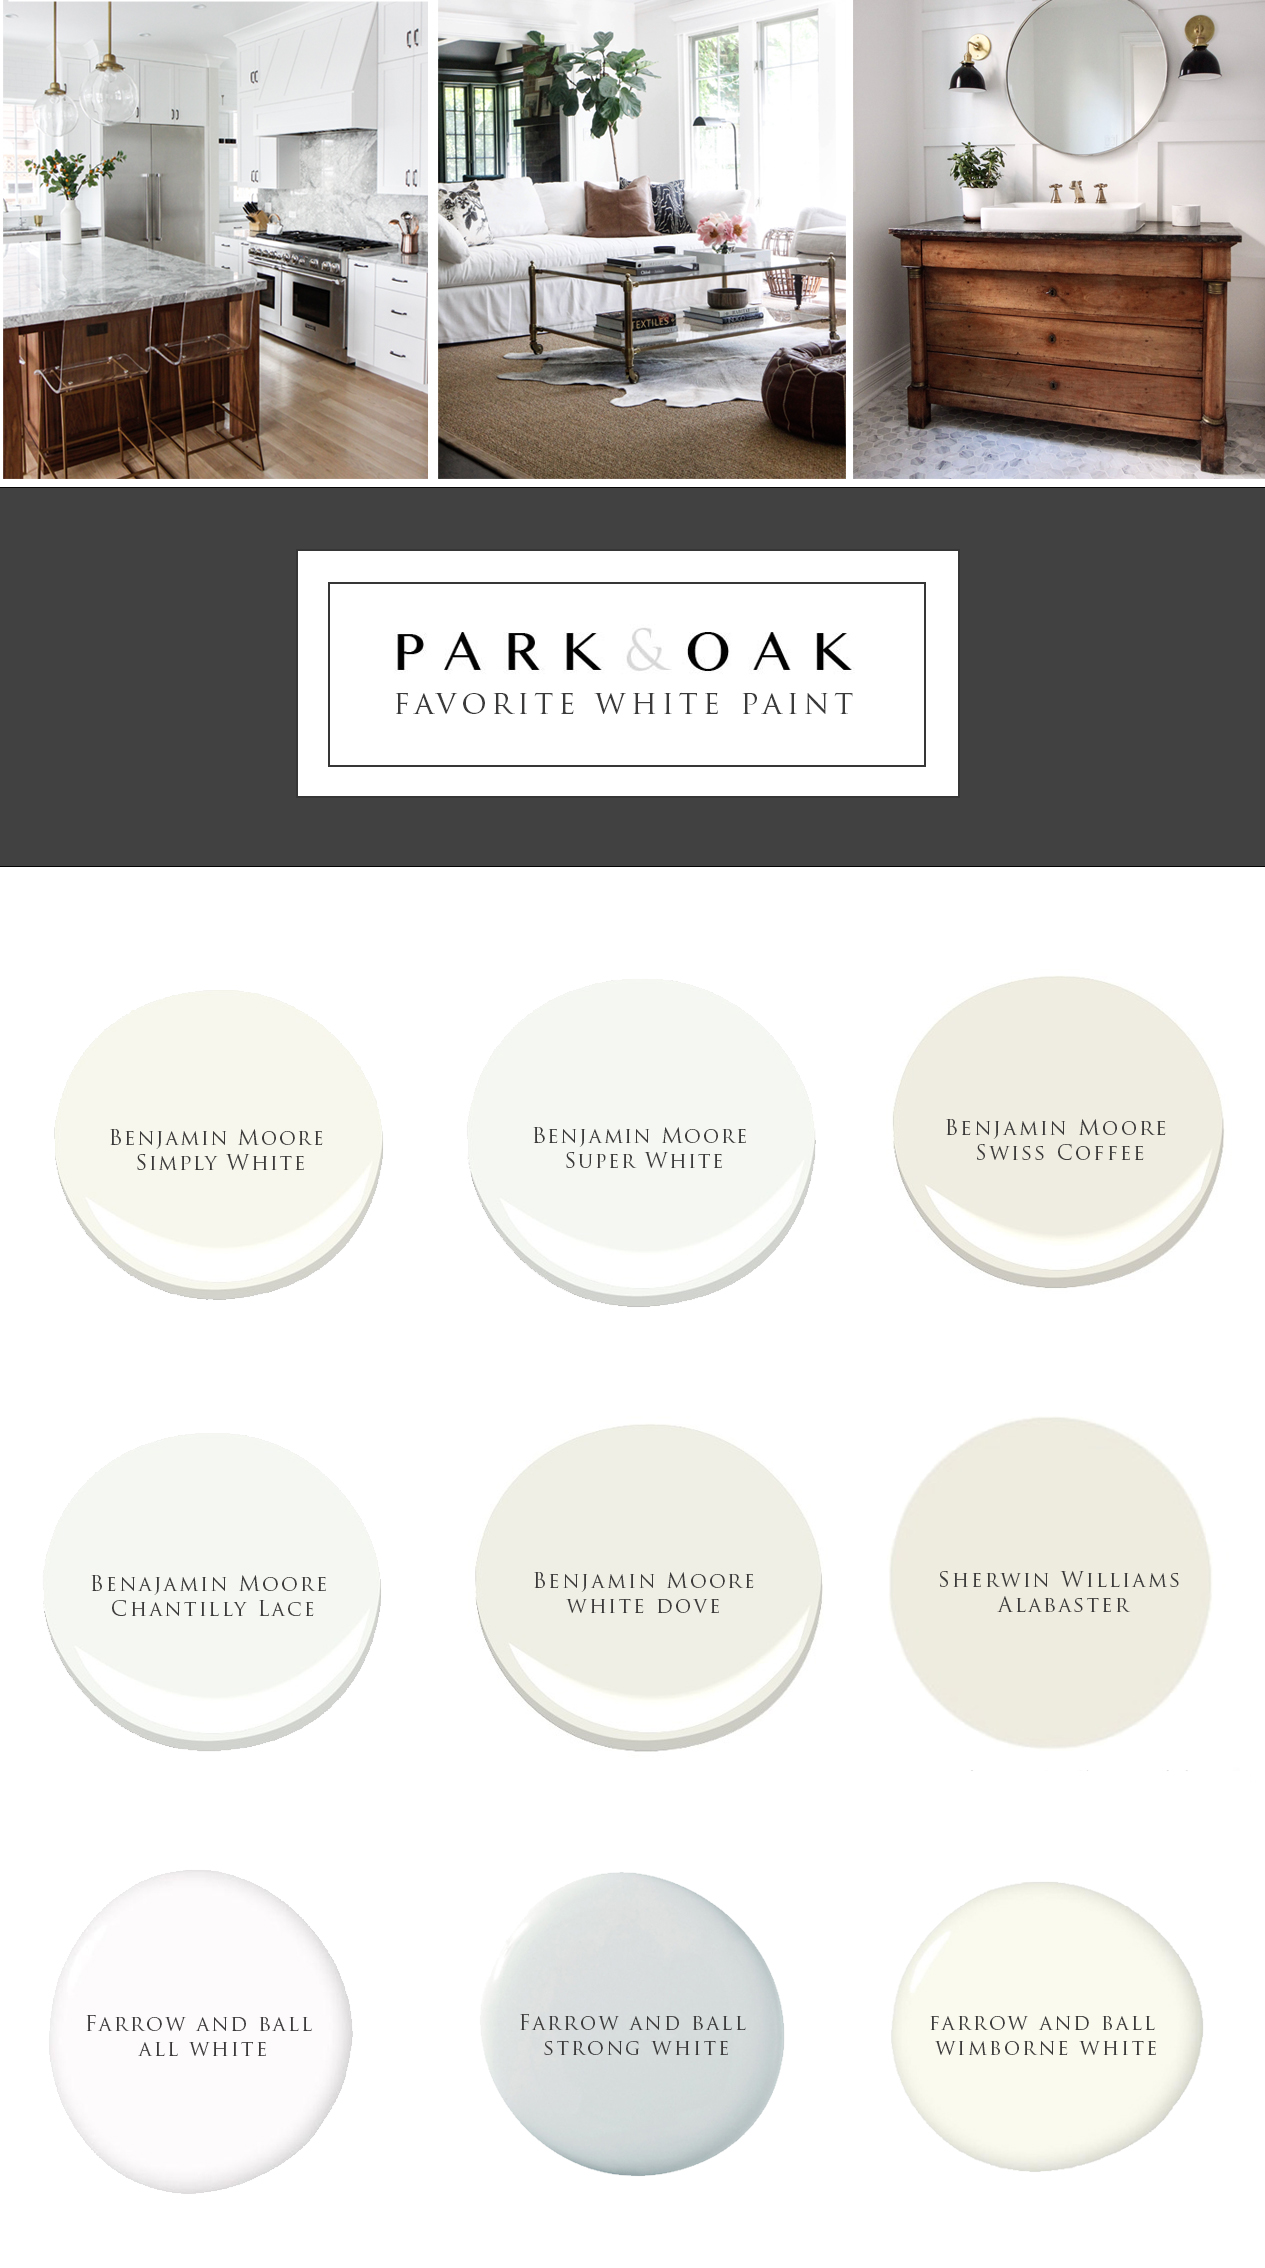 The Right White - Park and Oak Interior Design